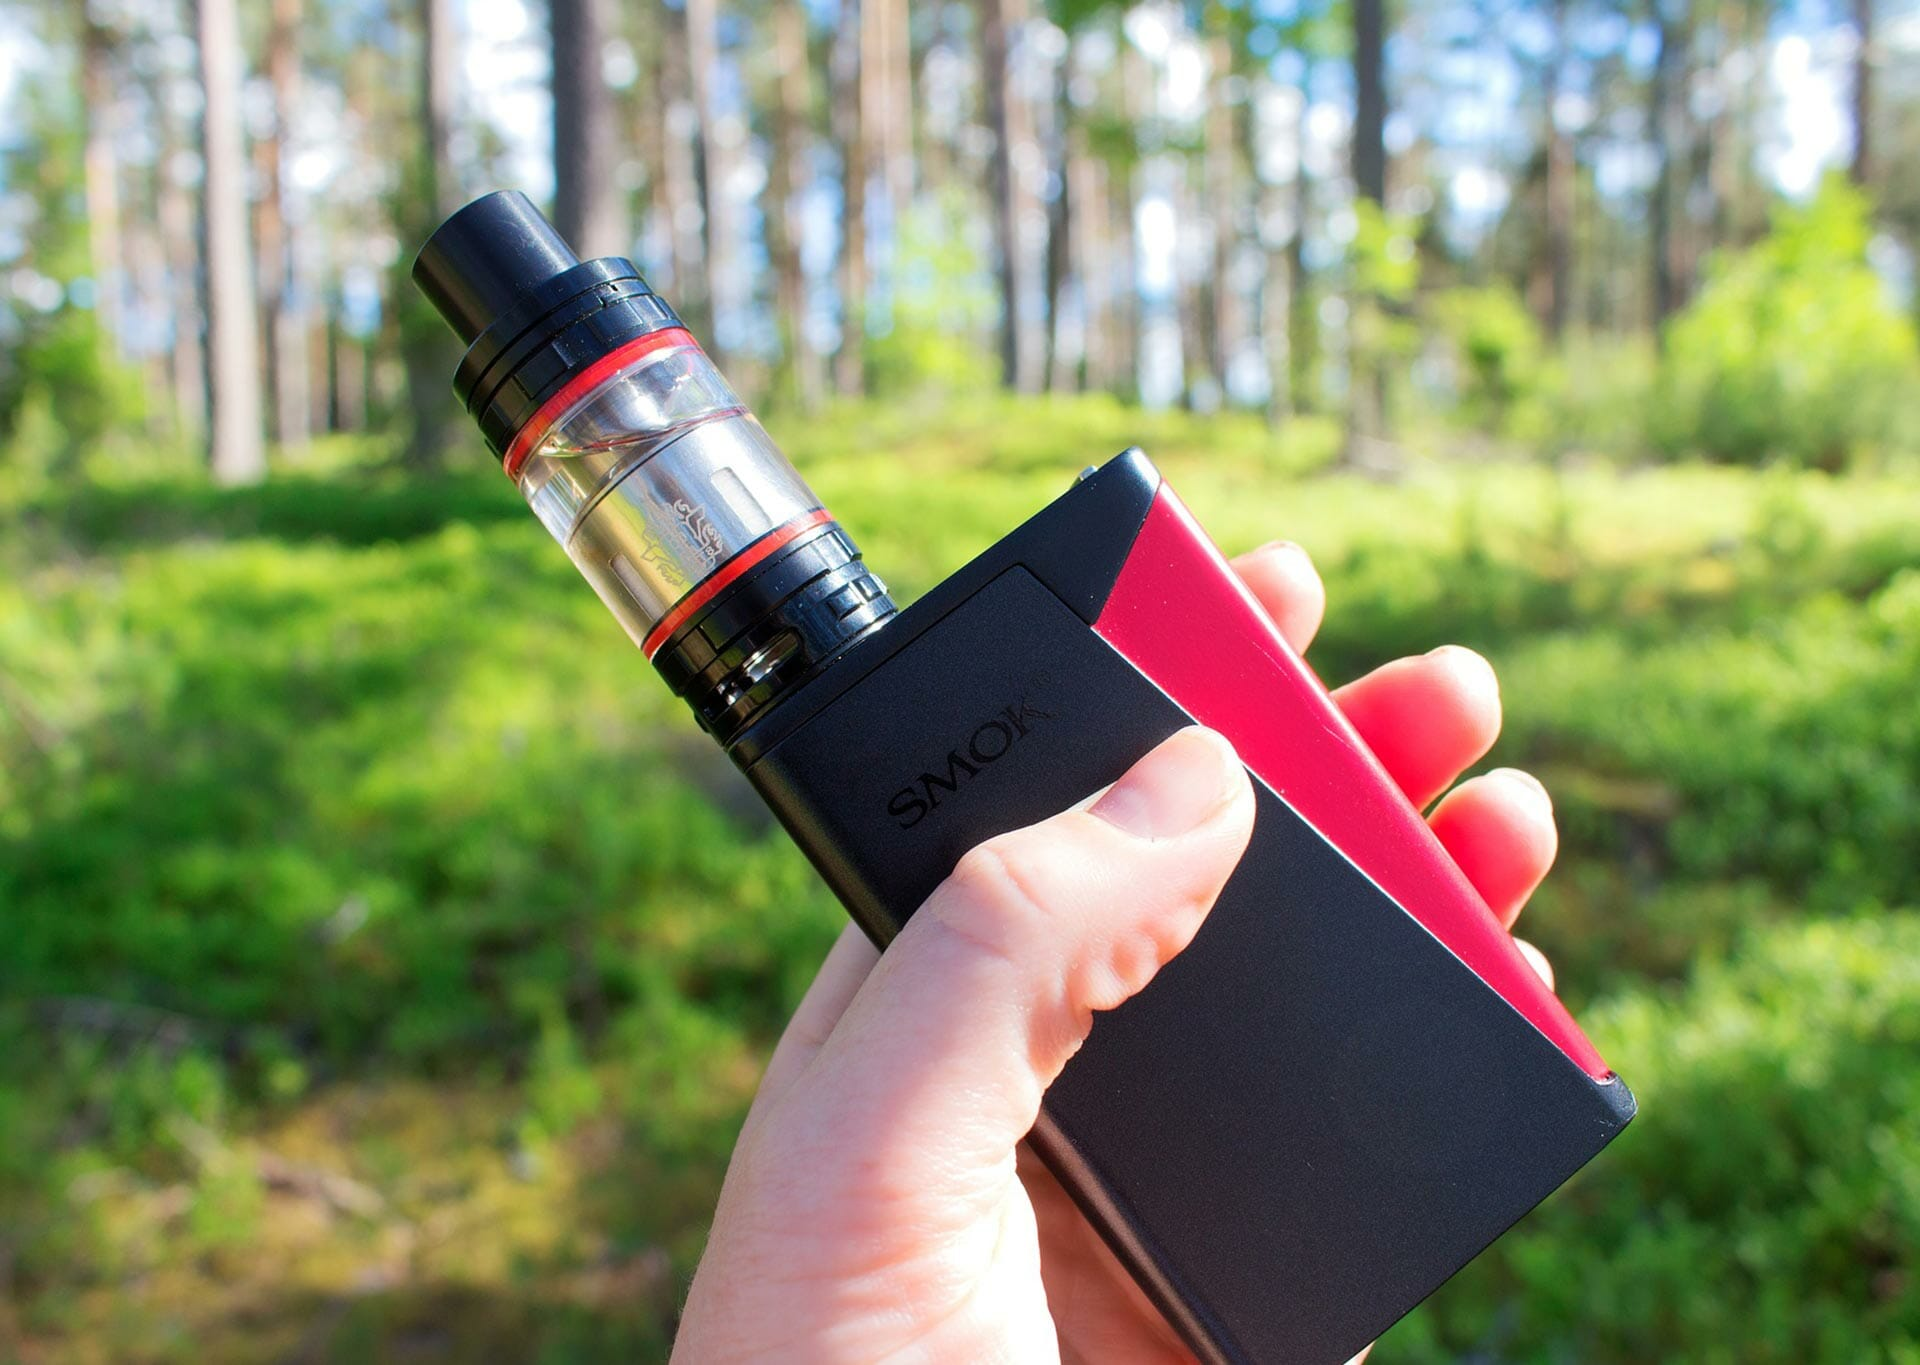 4-Simple-Solutions-to-Common-Vape-Problems